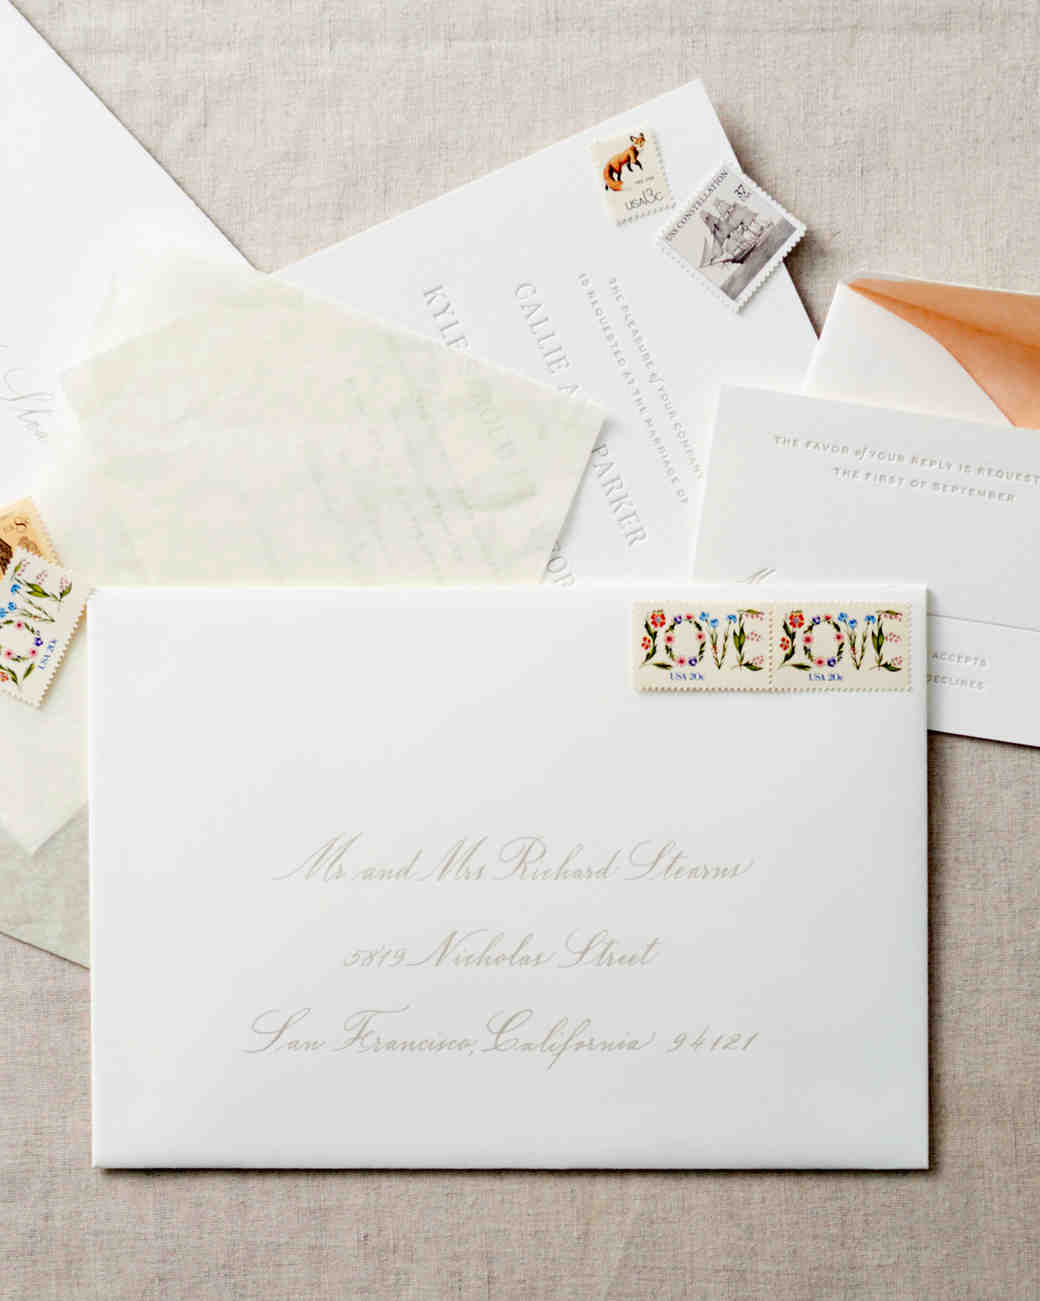 How to address guests on wedding invitation envelopes martha how to address guests on wedding invitation envelopes martha stewart weddings stopboris